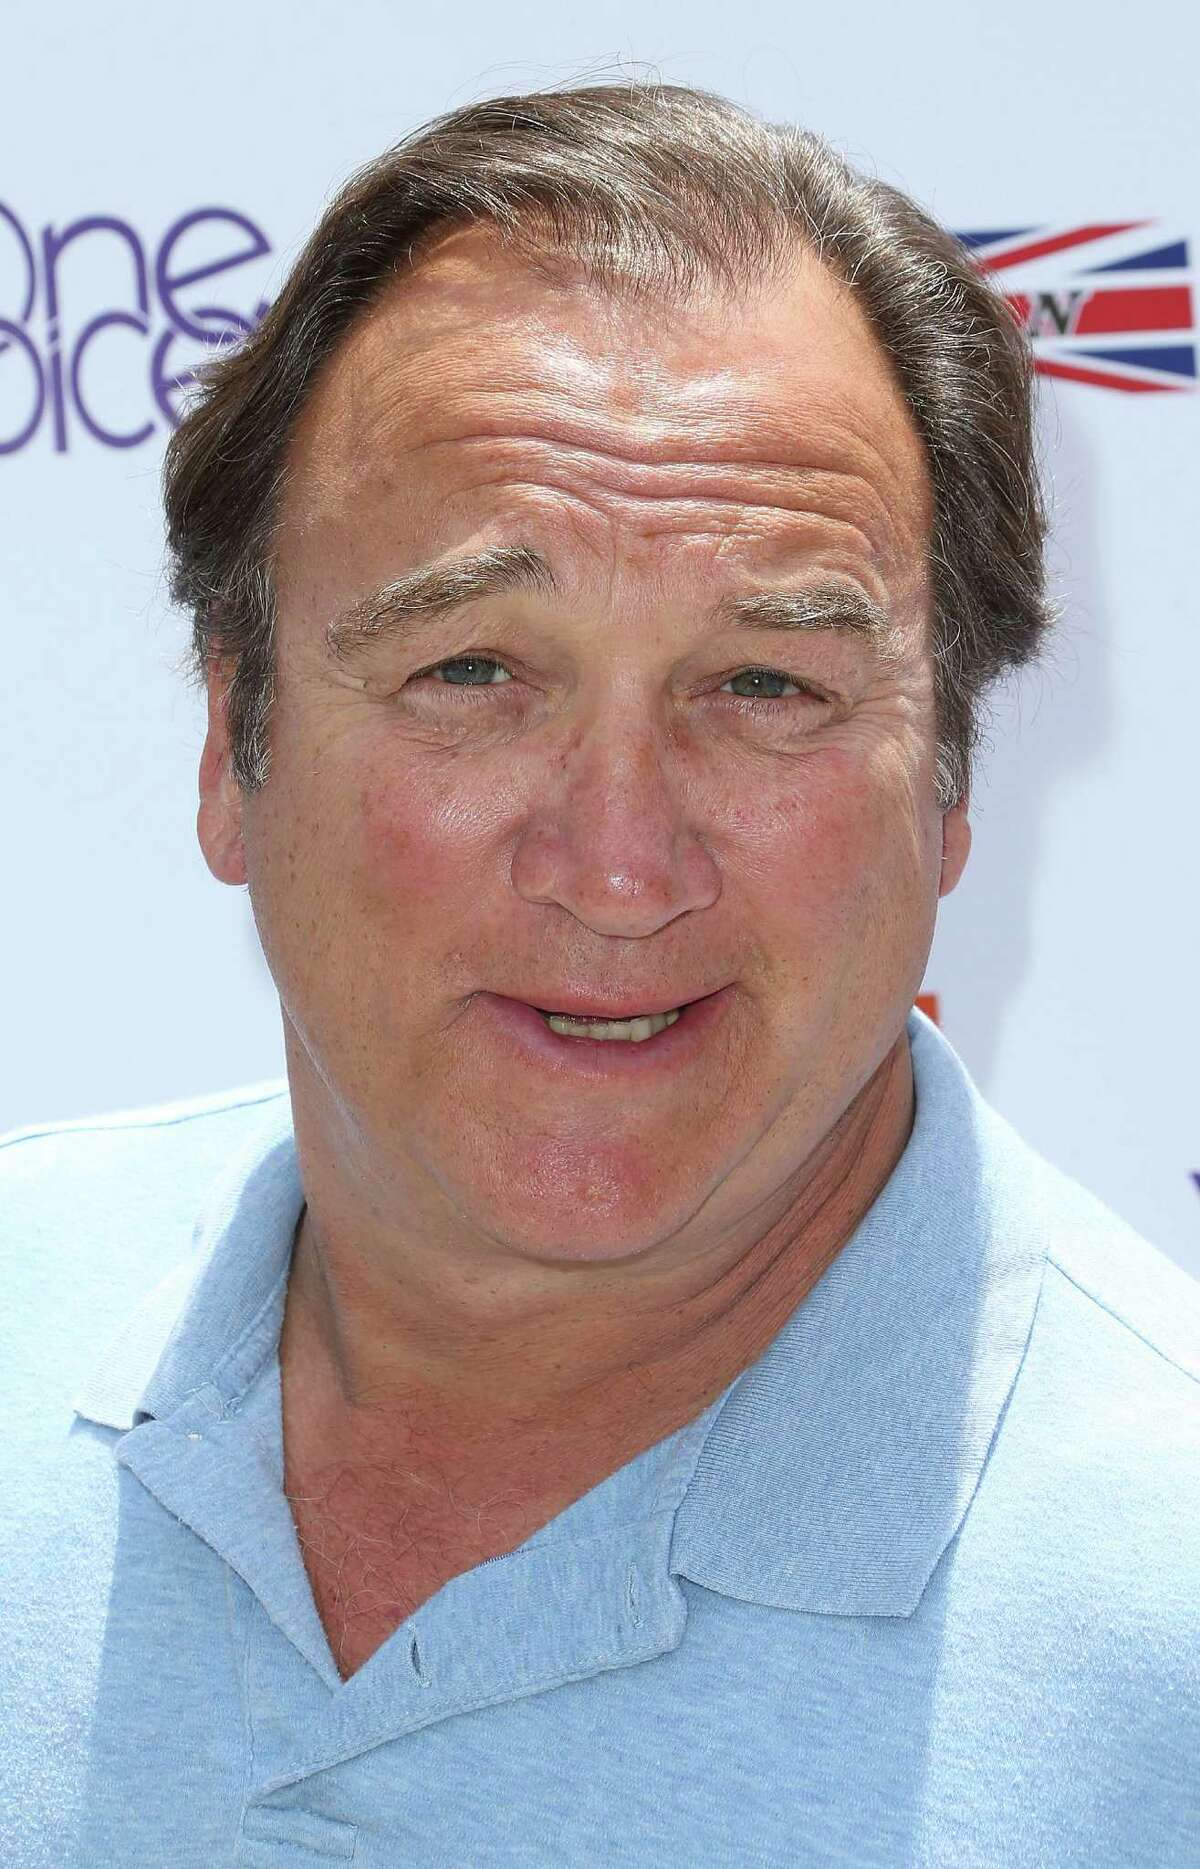 BEVERLY HILLS, CA - JUNE 02: Actor Jim Belushi attends the Seventh Annual Kidstock Music and Art Festival to benefit One Voice Scholars, at the Greystone Mansion on June 2, 2013 in Beverly Hills, California. (Photo by Frederick M. Brown/Getty Images)